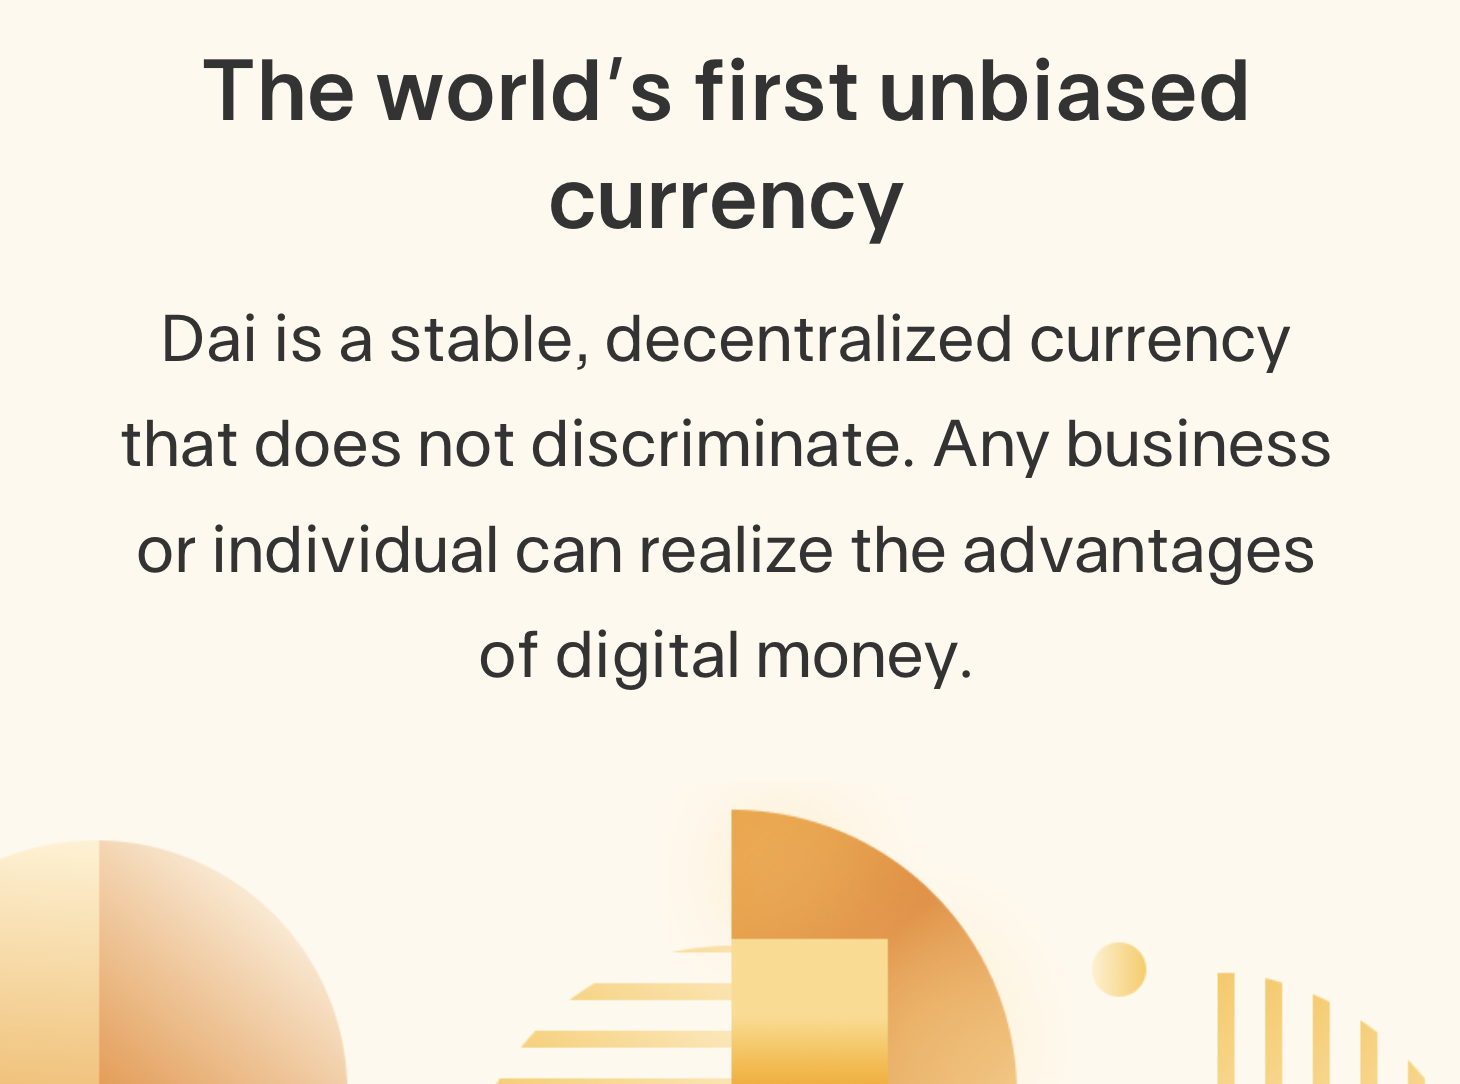 As the world's first unbiased currency, Dai can help meet the needs of the unbanked.